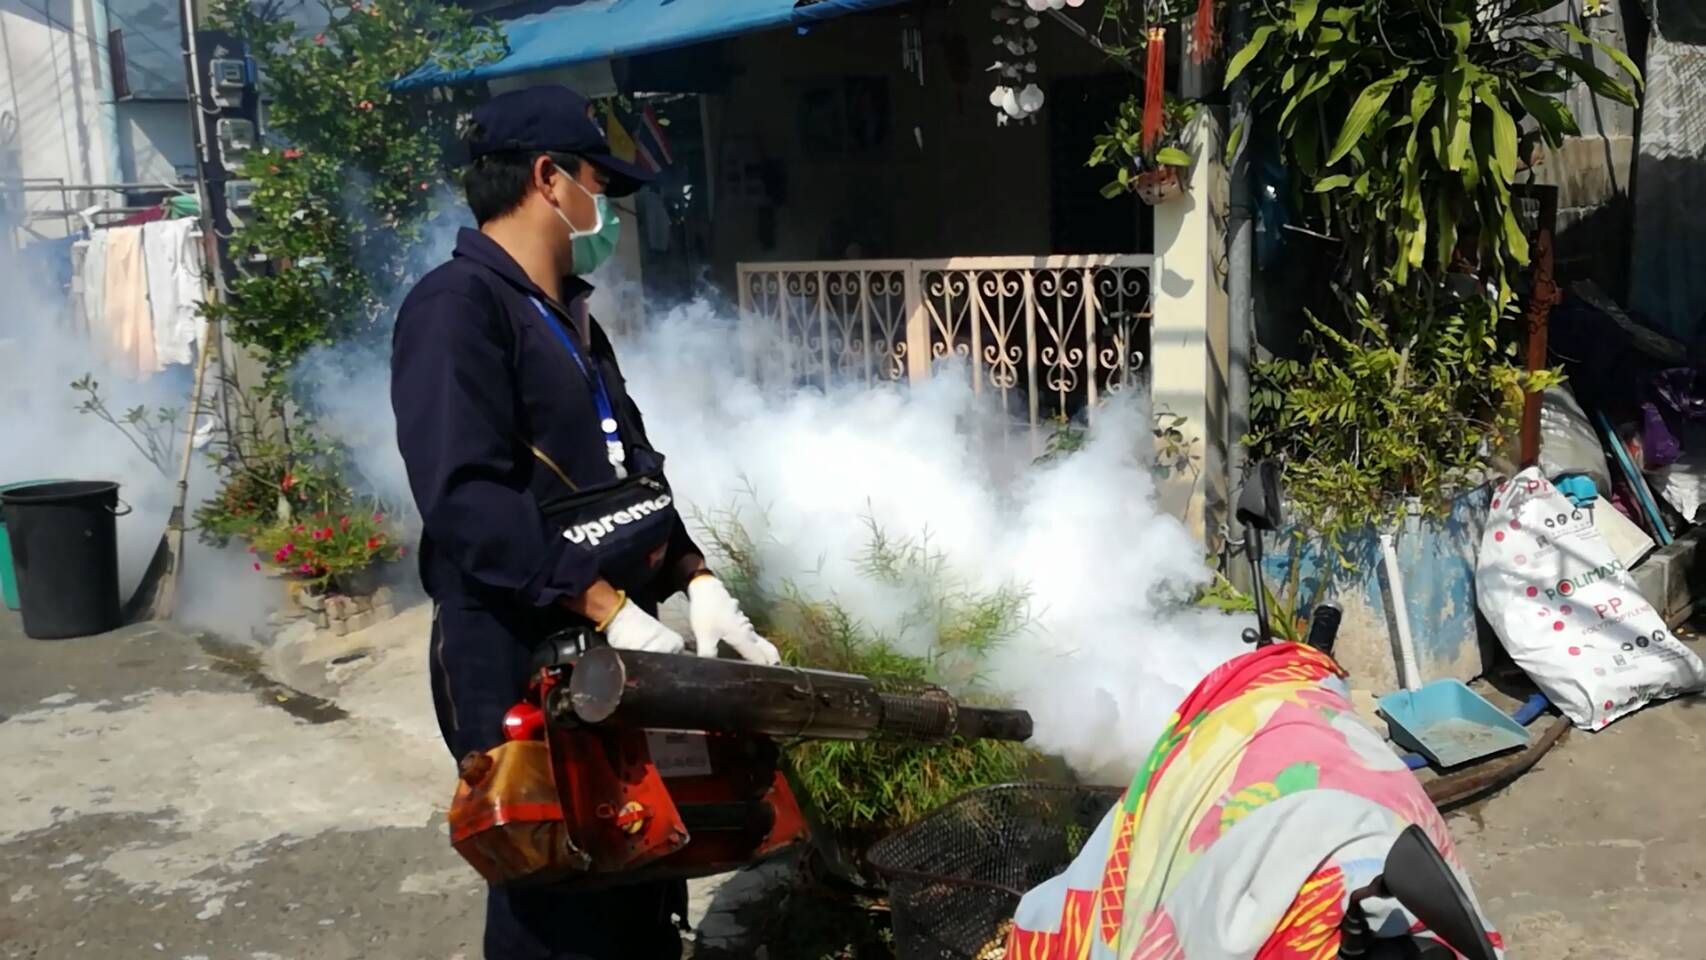 The Thepprasit Community was the latest Pattaya neighborhood to be fumigated for disease-carrying mosquitos as the city continues its war against dengue fever.